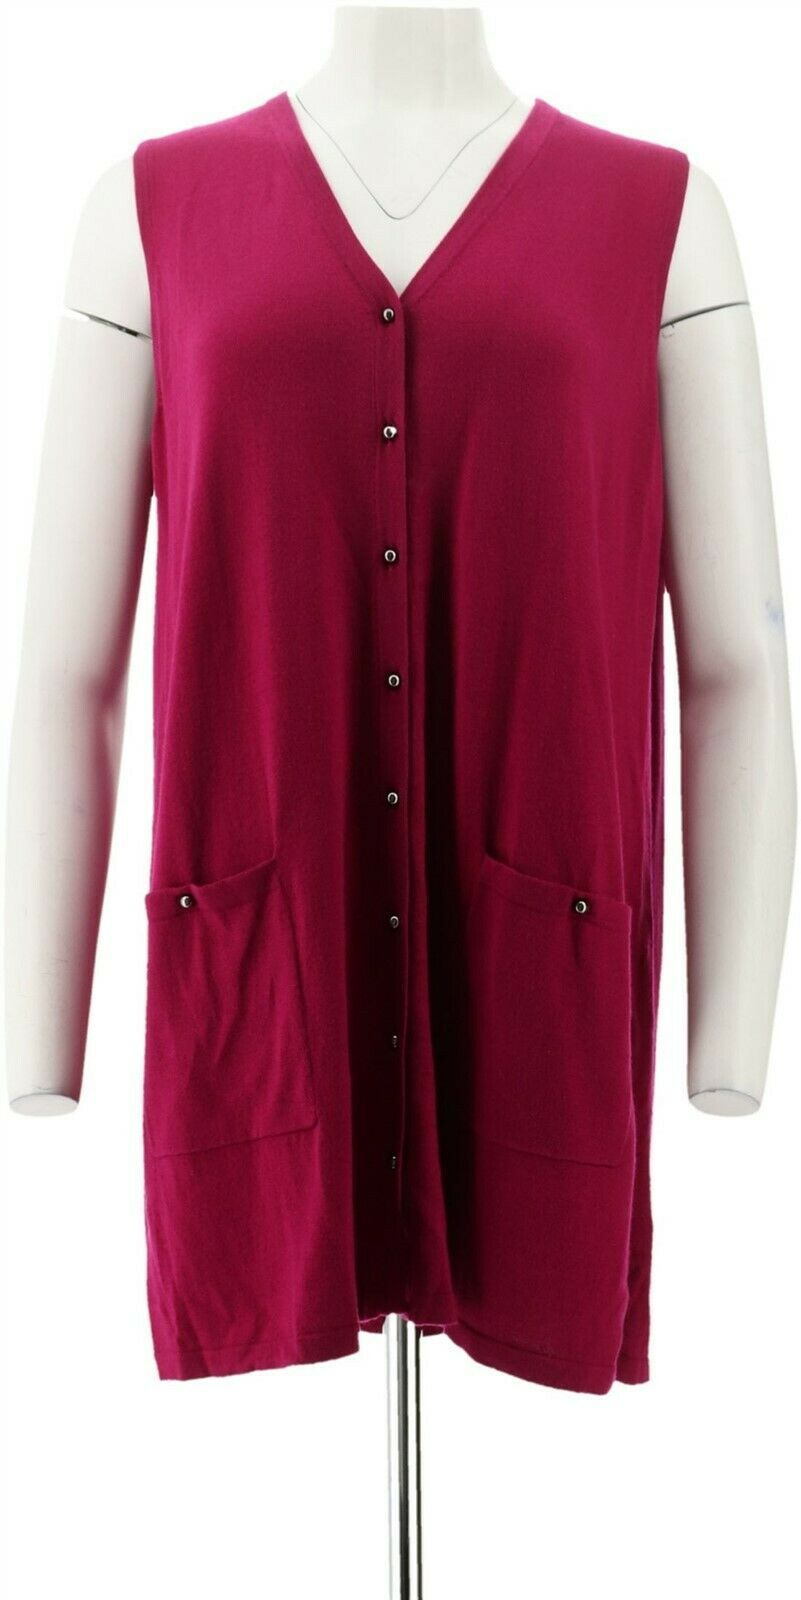 Primary image for Susan Graver Rayon Nylon Button Front Long Sweater Vest Magenta 2X NEW A293628